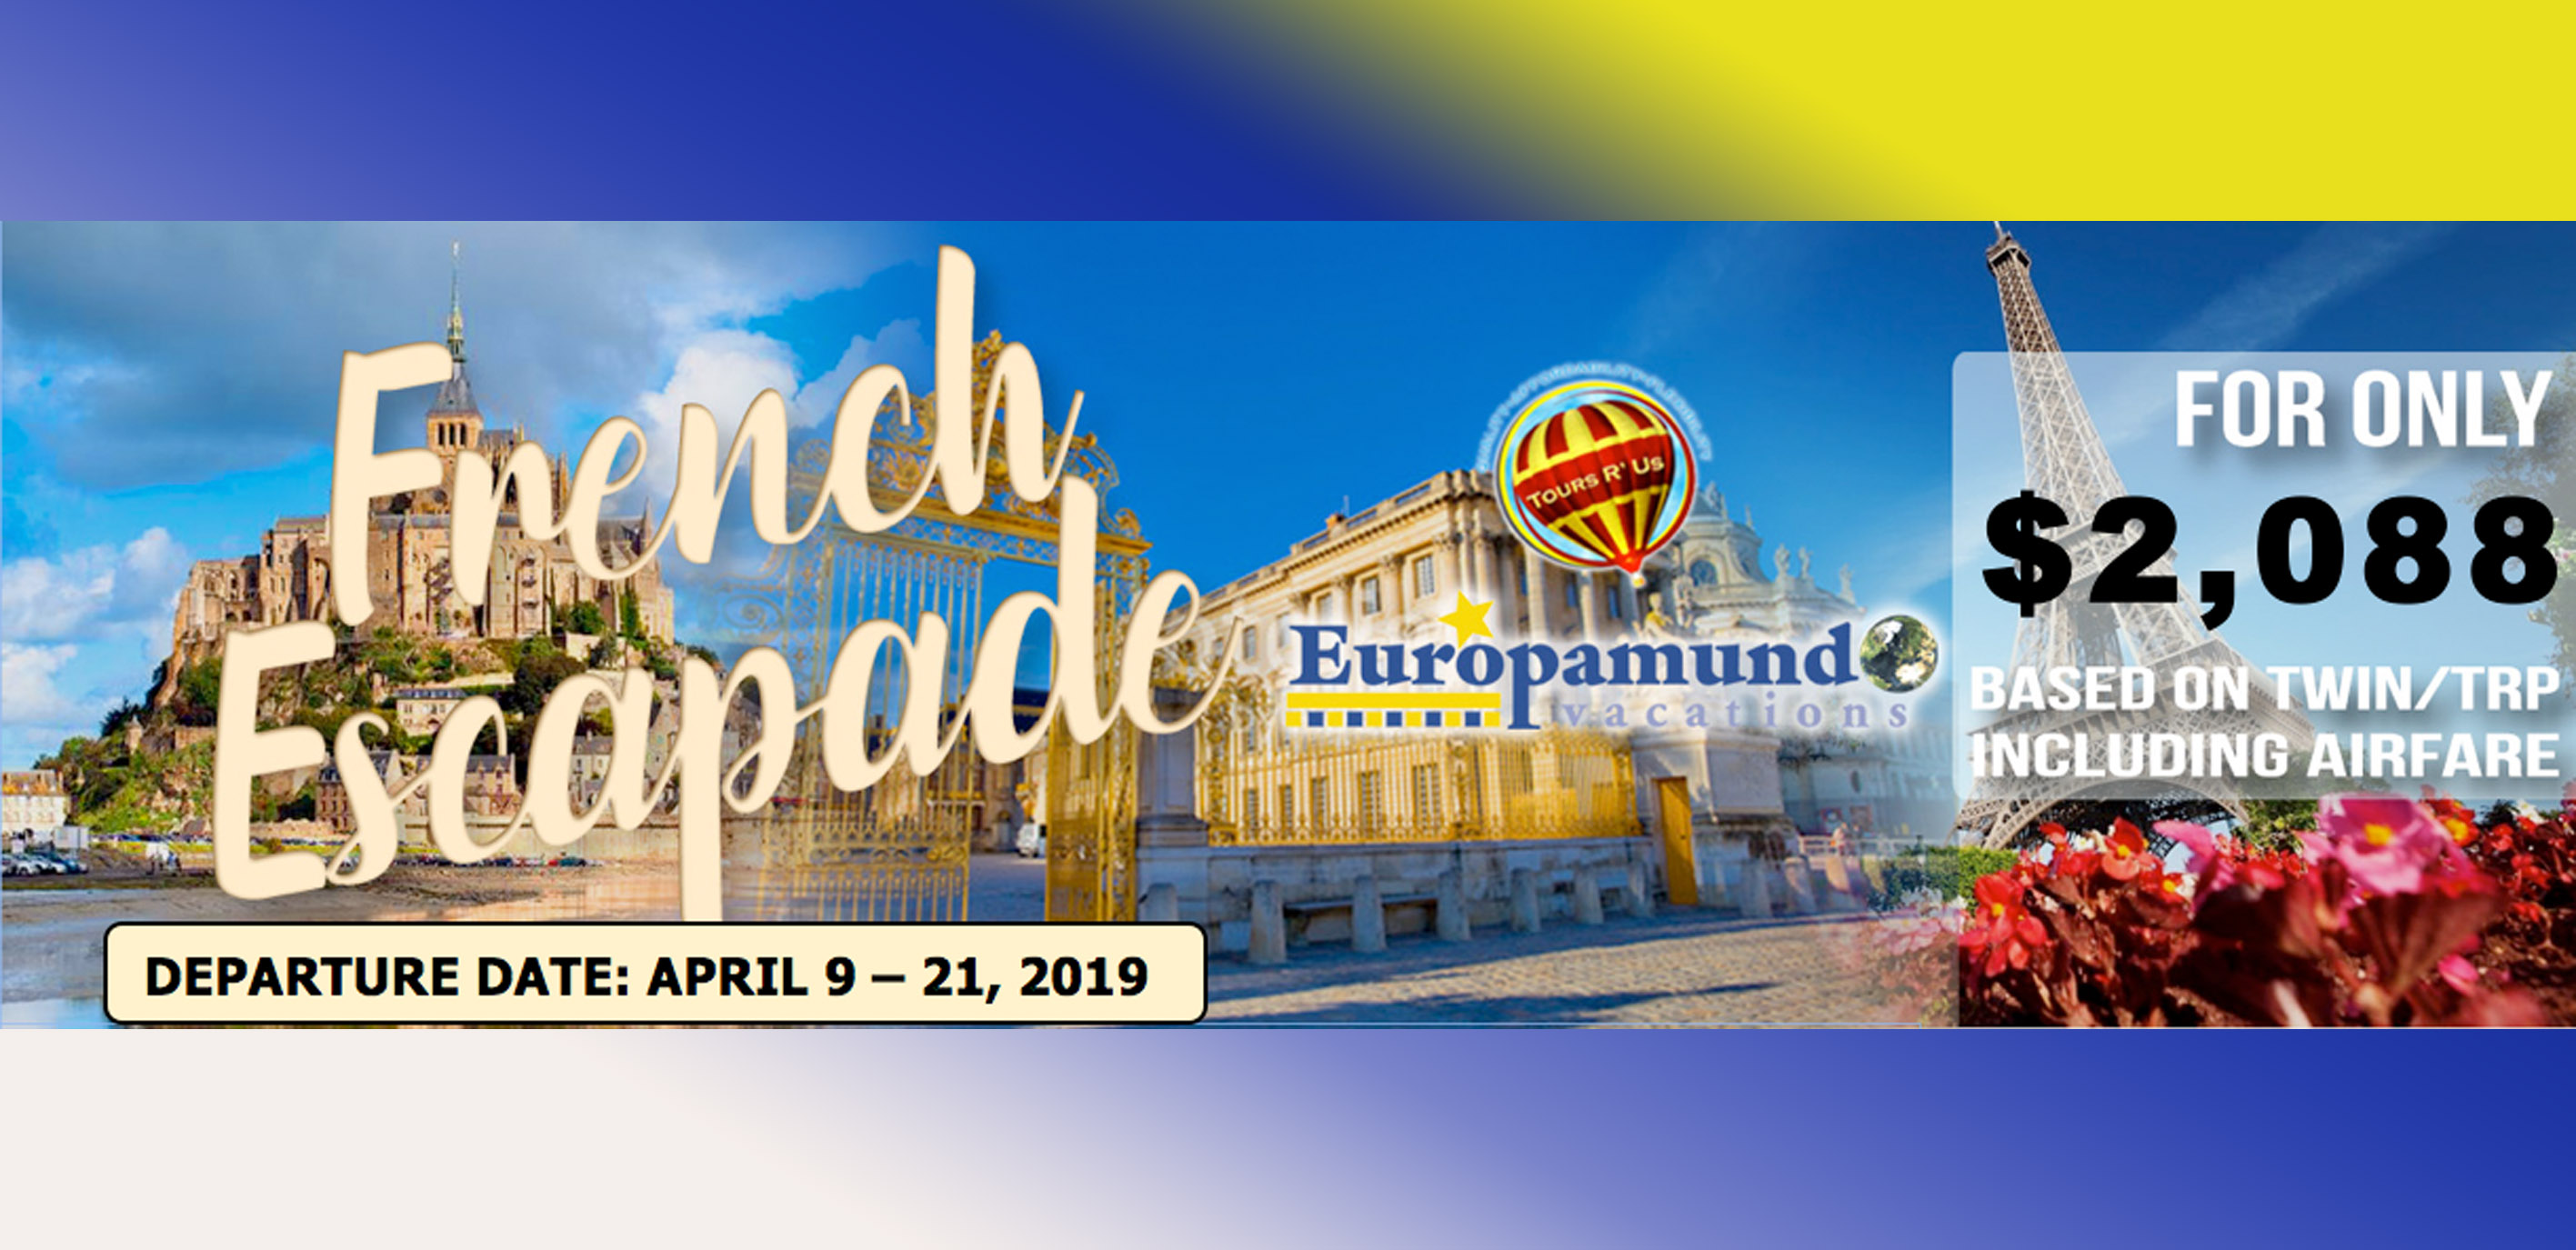 FRENCH ESCAPADE Featured Images 2019 March Packages